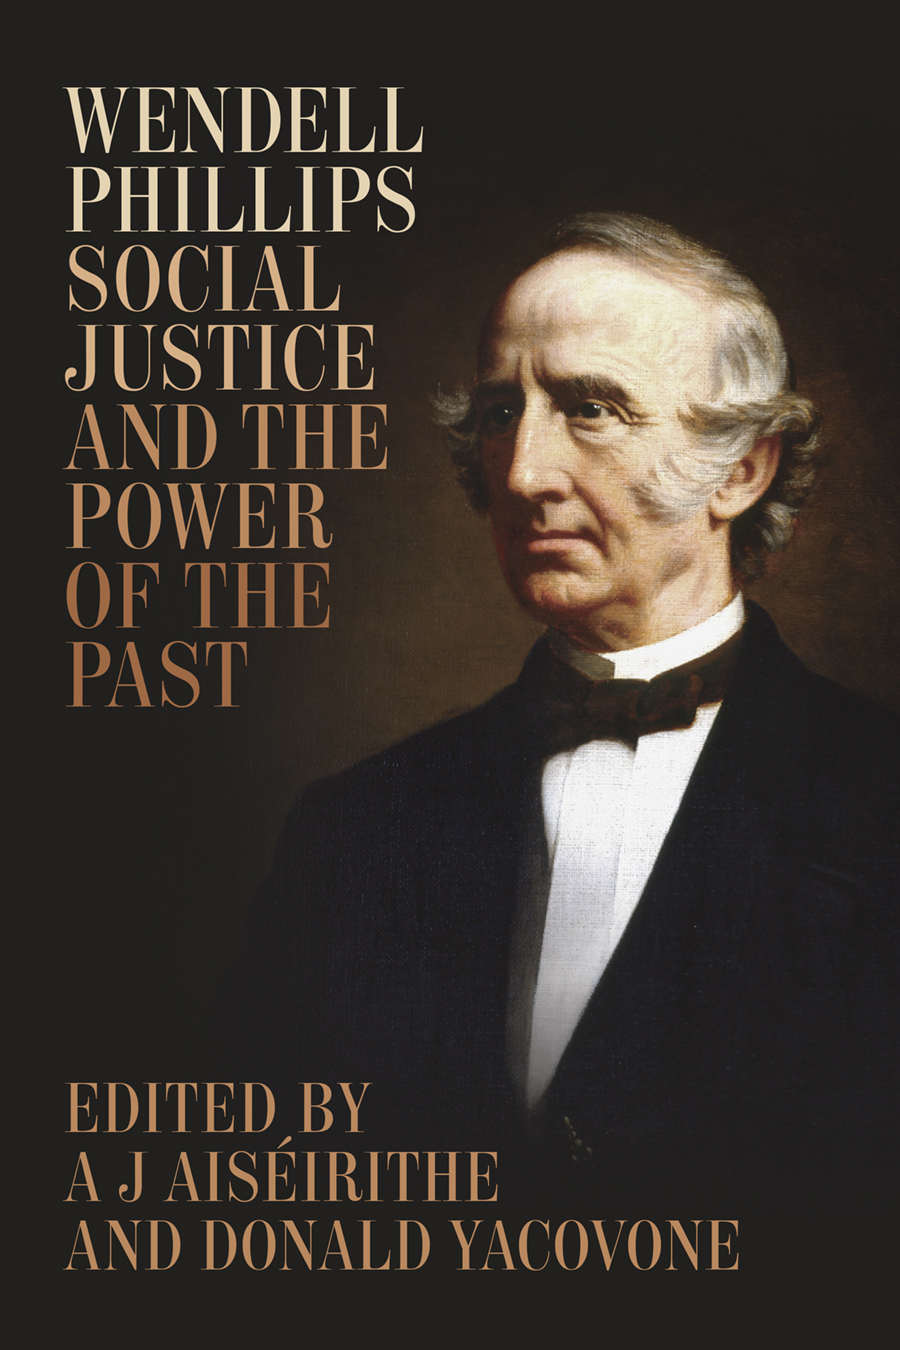 """""""'Here Labor Never Forgives': Wendell Phillips, Labor Reform, and Electoral Politics, 1868-1883"""" in A J Aiséirithe and Donald Yacovone, eds., """"Nothing but Freedom, Justice, and Truth"""": Essays on the Meaning of Wendell Phillips (Baton Rouge, LA: Louisiana State University Press, 2016) -"""